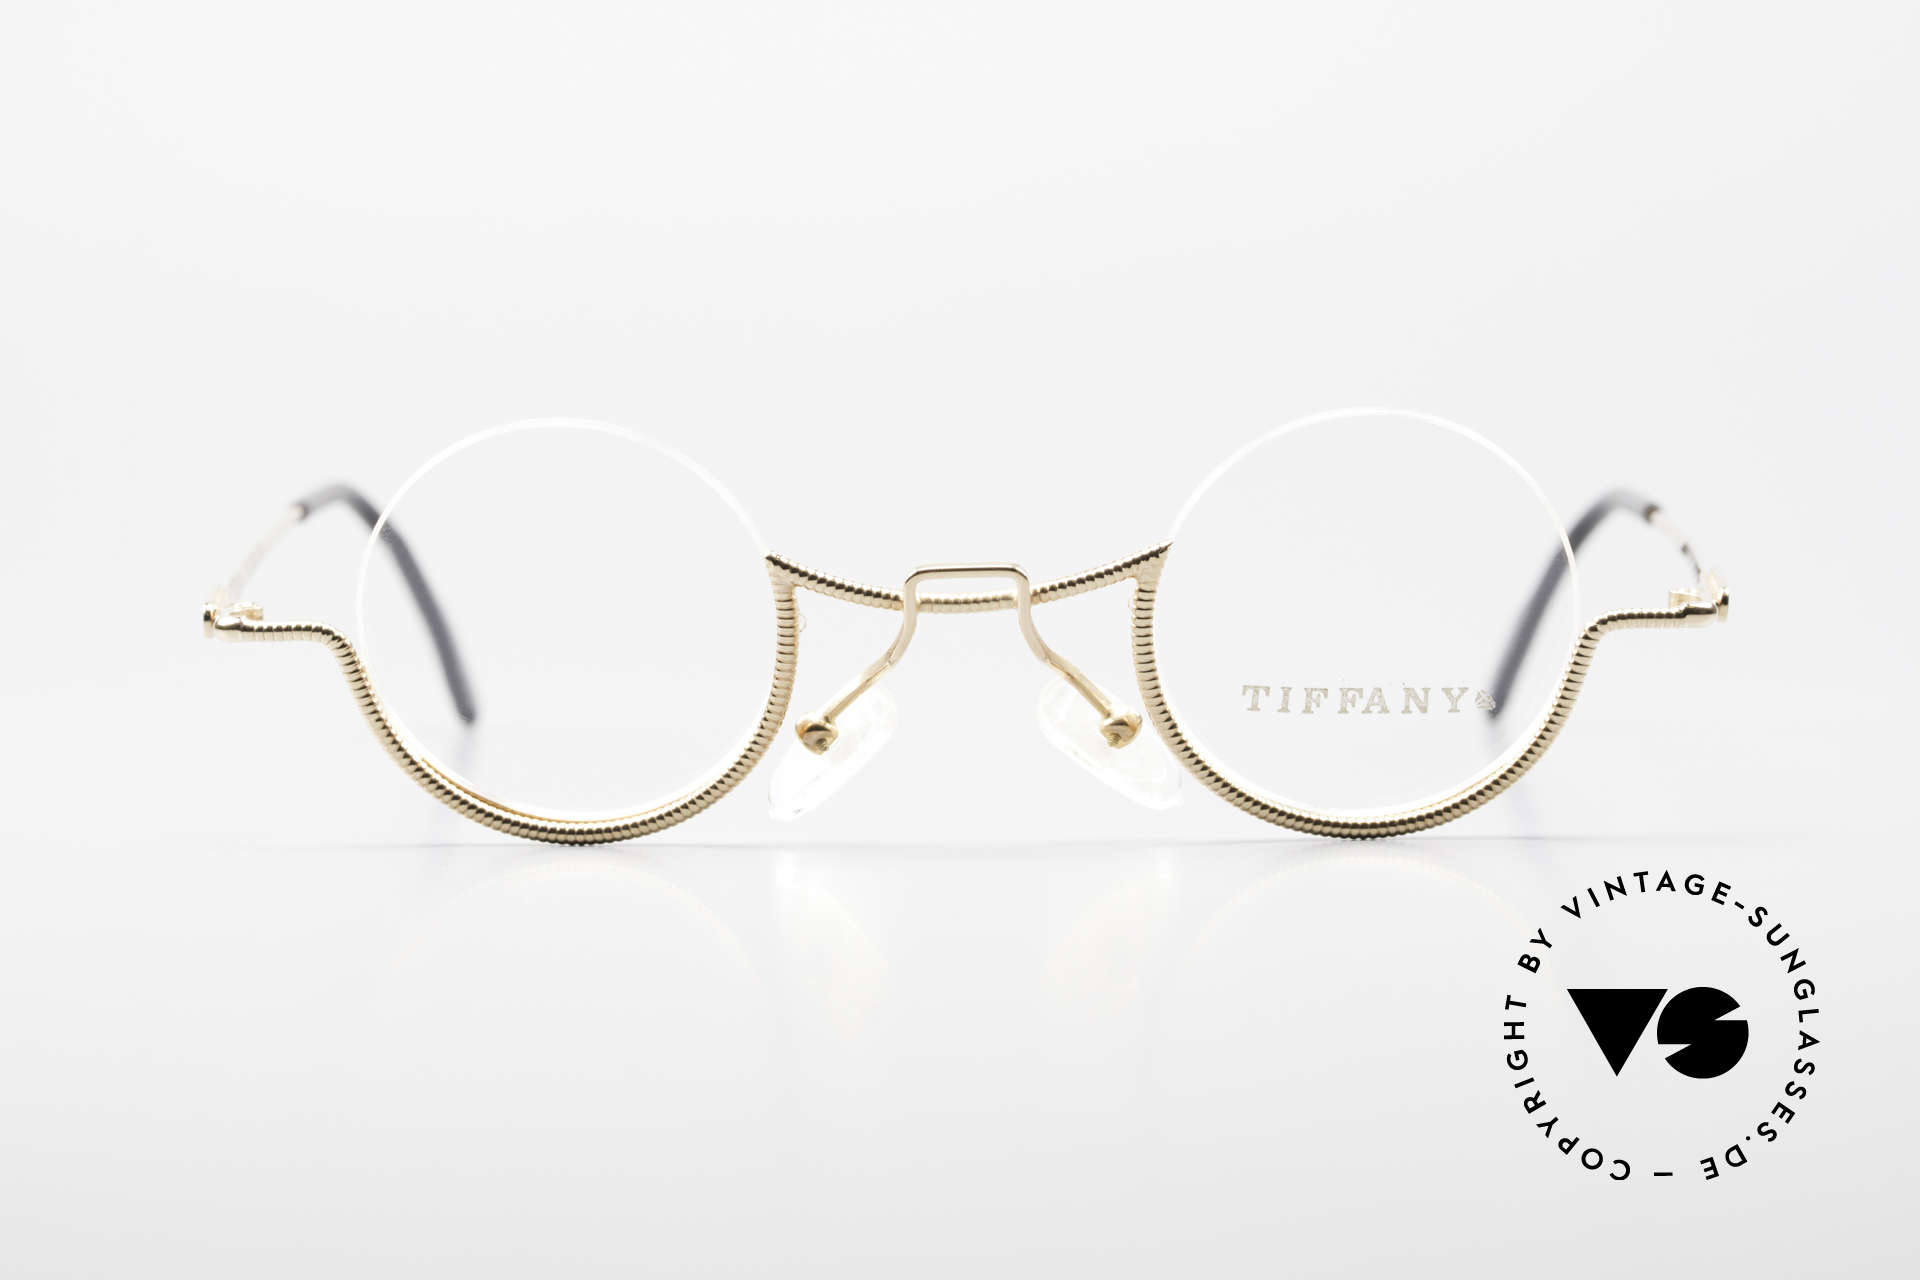 Tiffany T64 23K Gold Plated Luxury Frame, model T64, in size 36/11, 140, Col 4 (gold/black), Made for Women